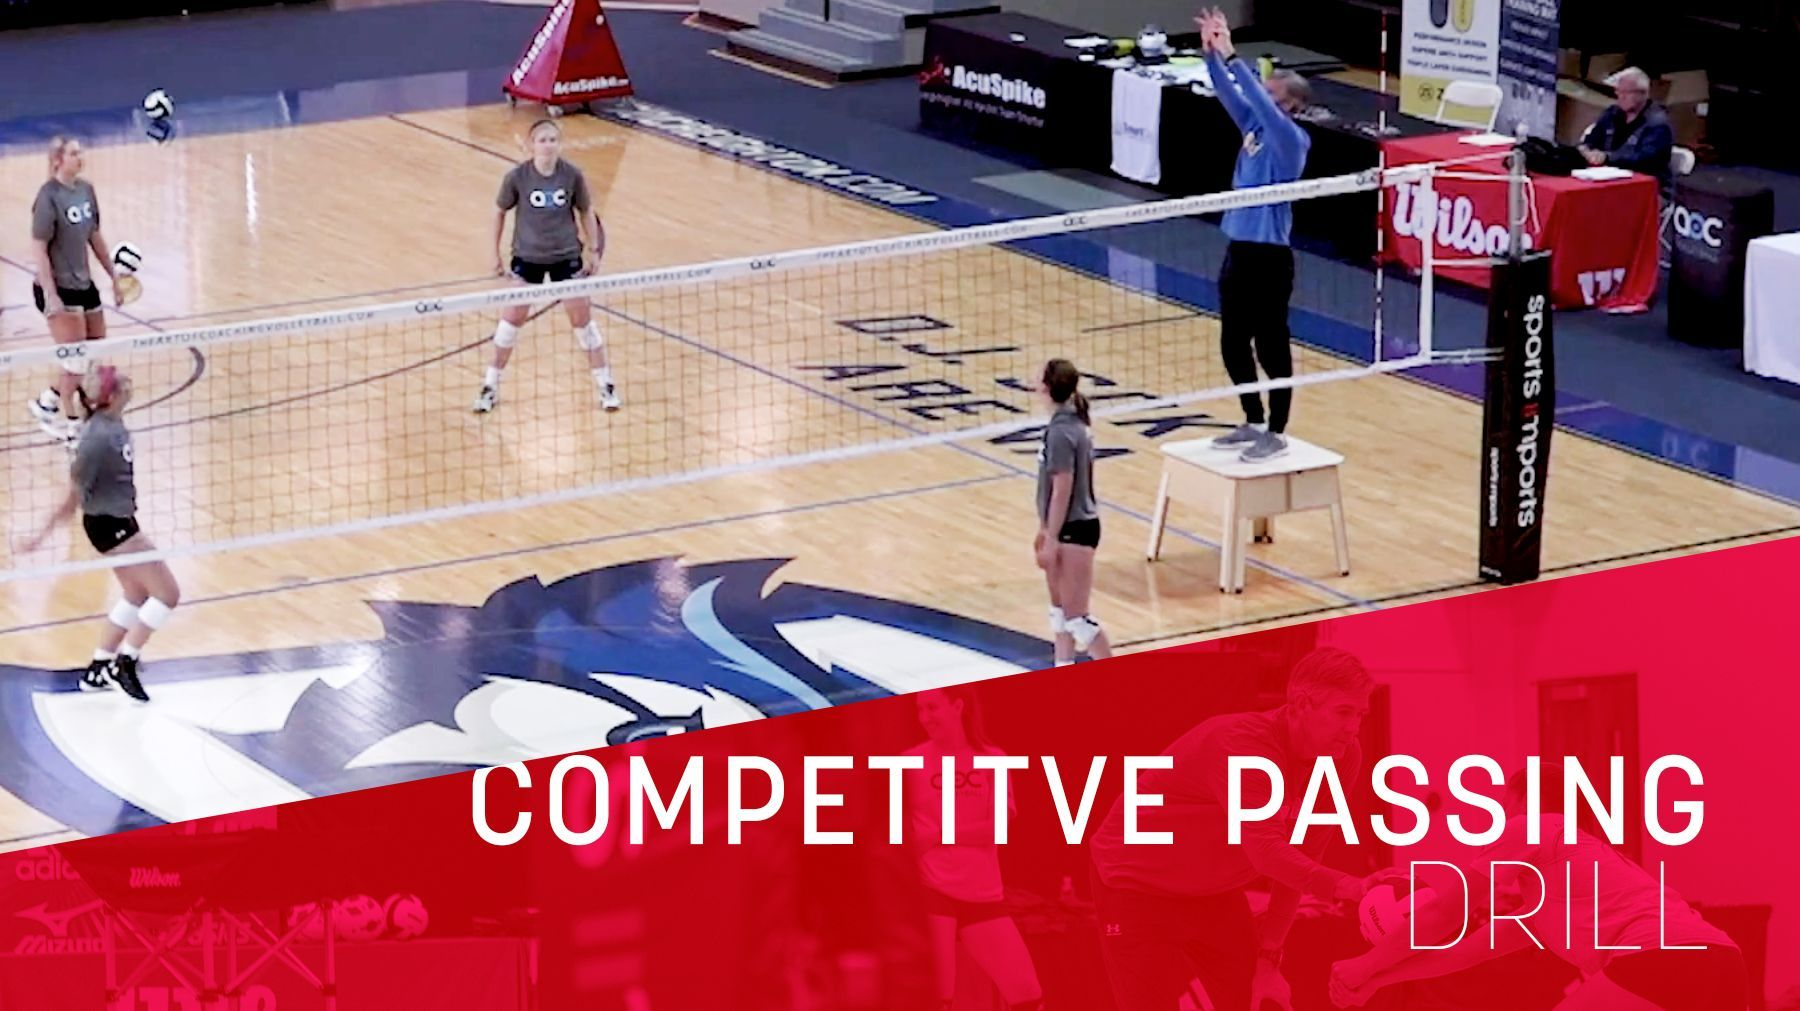 Competitive Passing Drill The Art Of Coaching Volleyball Volleyball Workouts Coaching Volleyball Volleyball Practice